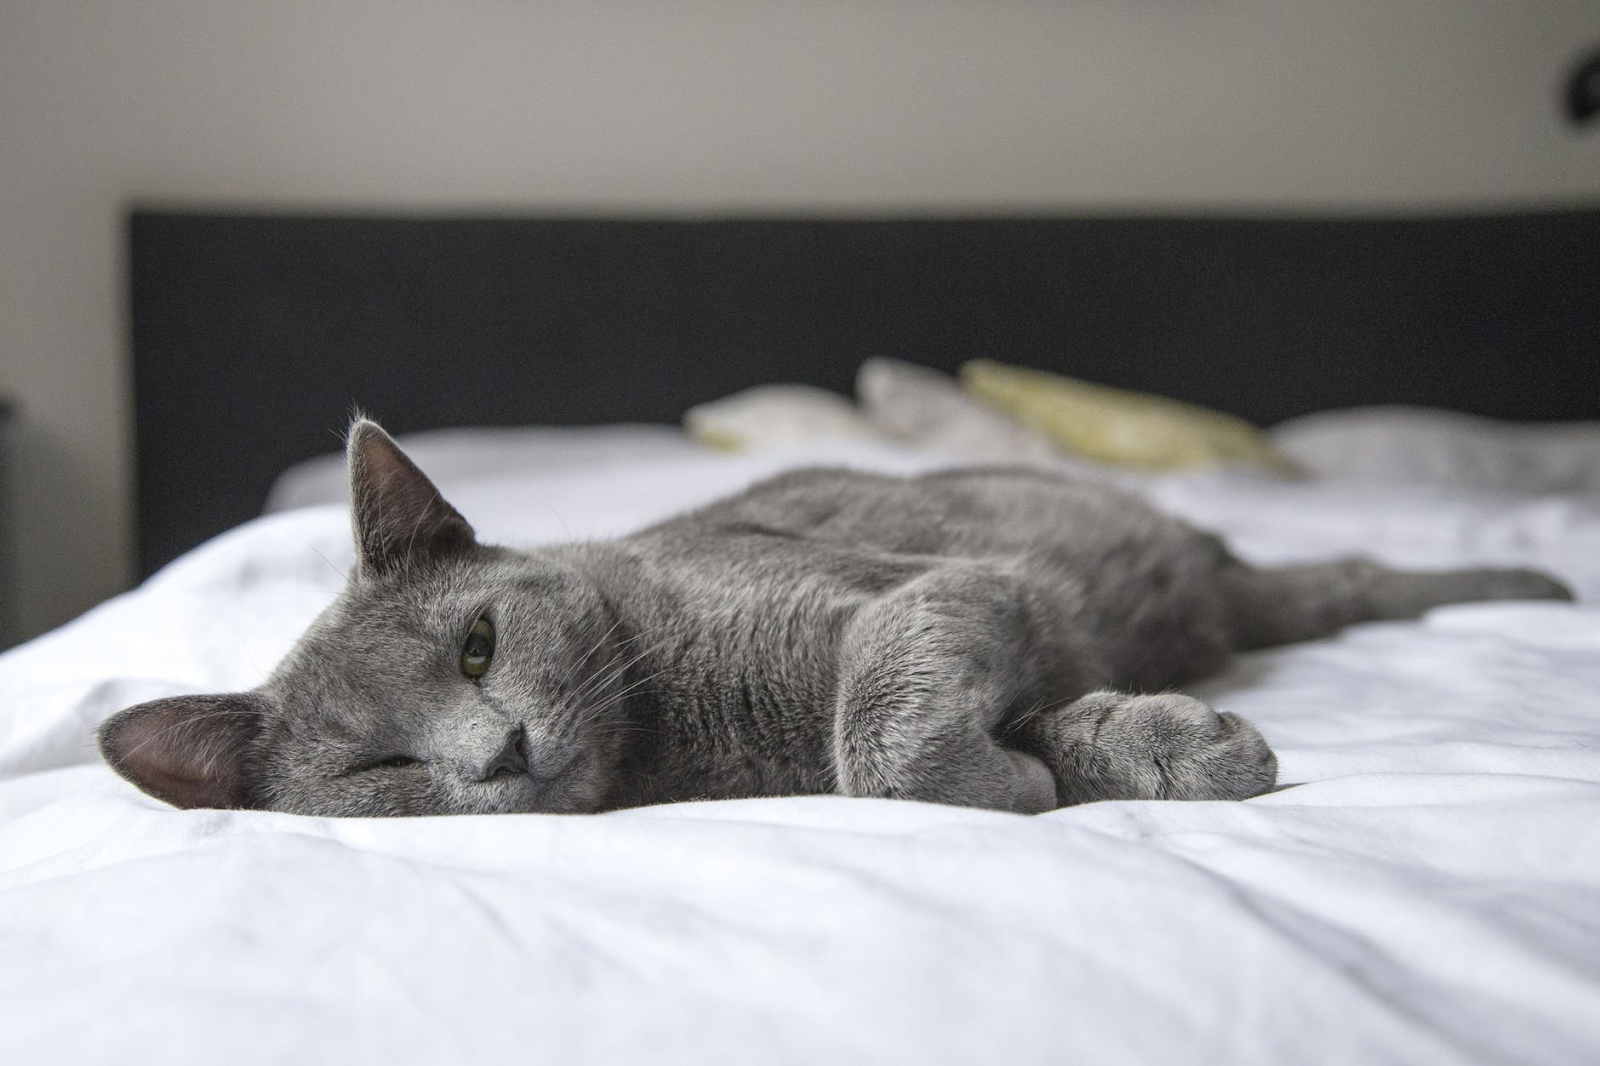 Grey Cat Laying on a Bed With White Sheets